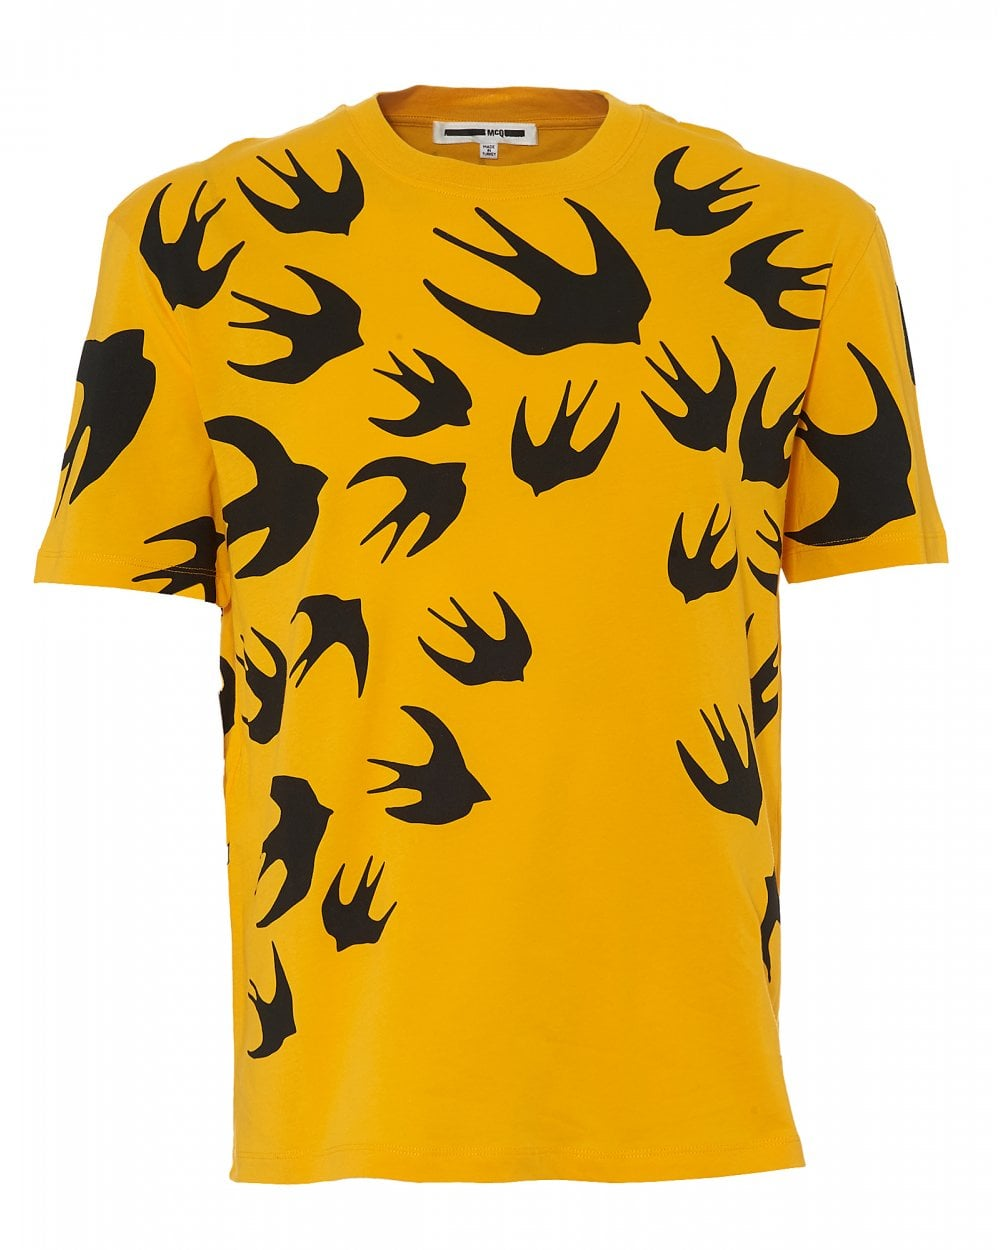 521558dae323 McQ by Alexander McQueen Mens Large Swallow T-Shirt